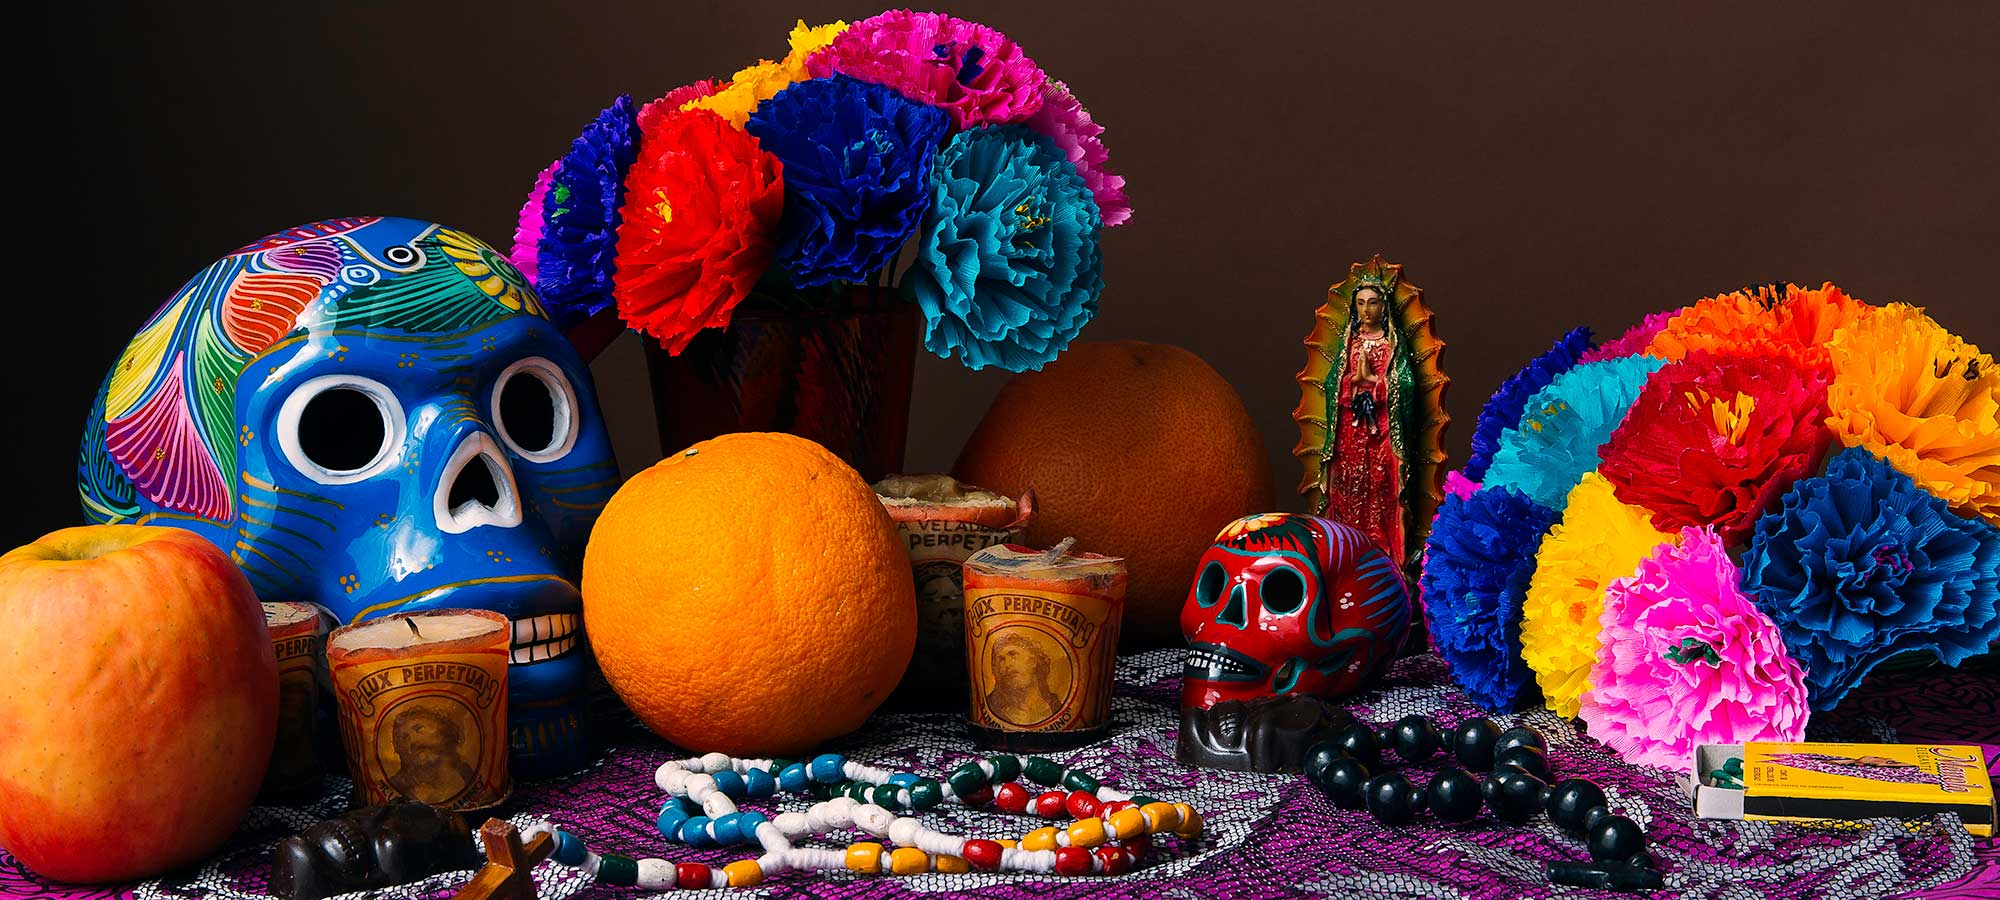 Our Best Recipes For Day Of The Dead